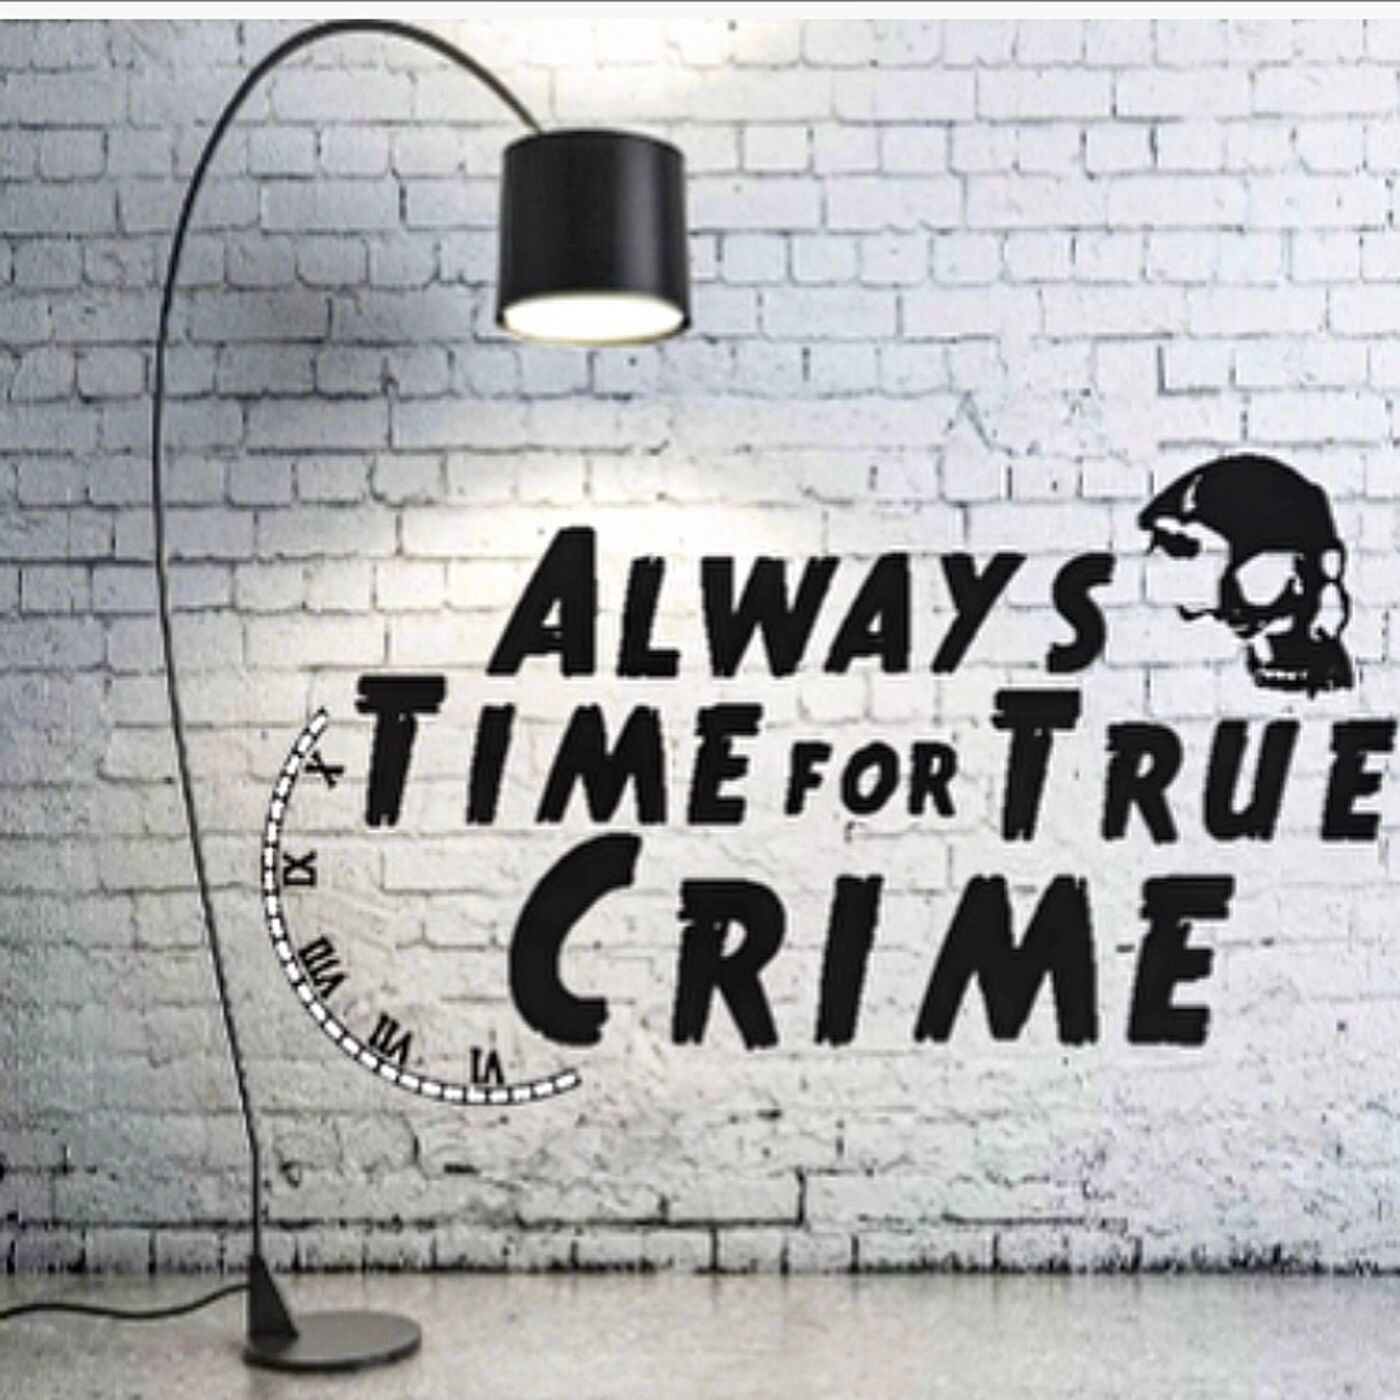 The Case of Susan Galvin by Always Time for True Crime